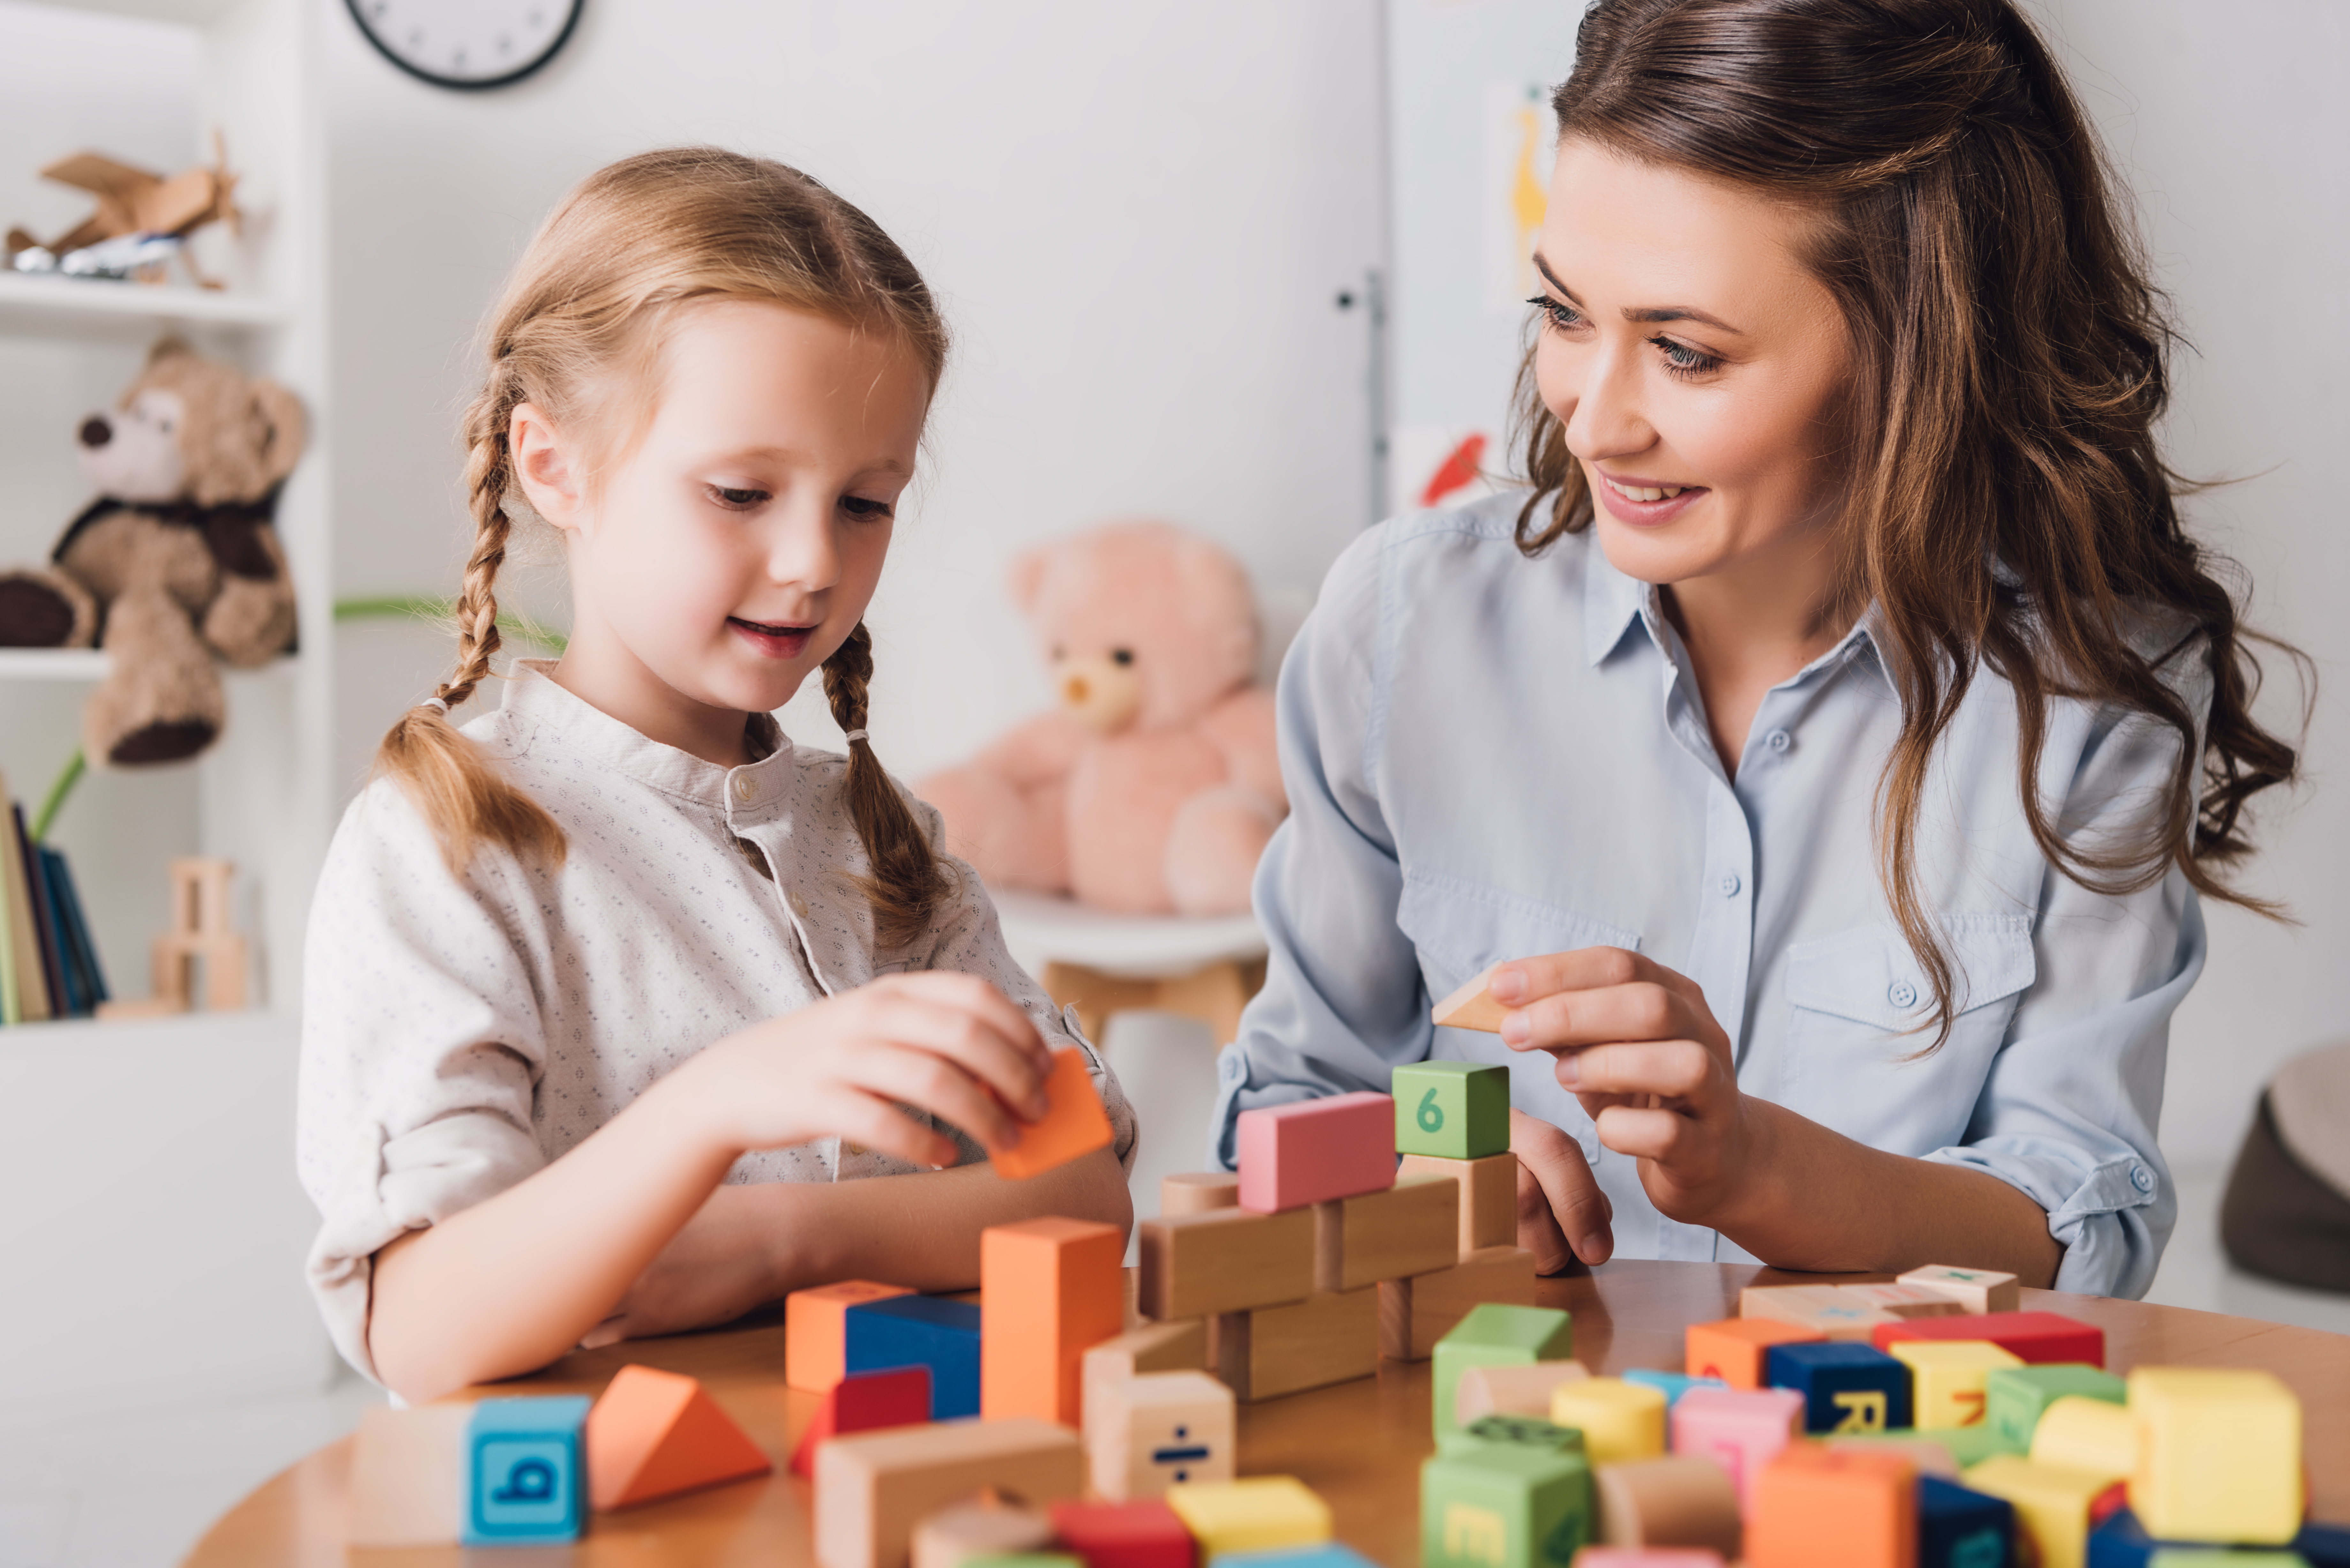 7 Stages of Starting Autism Services